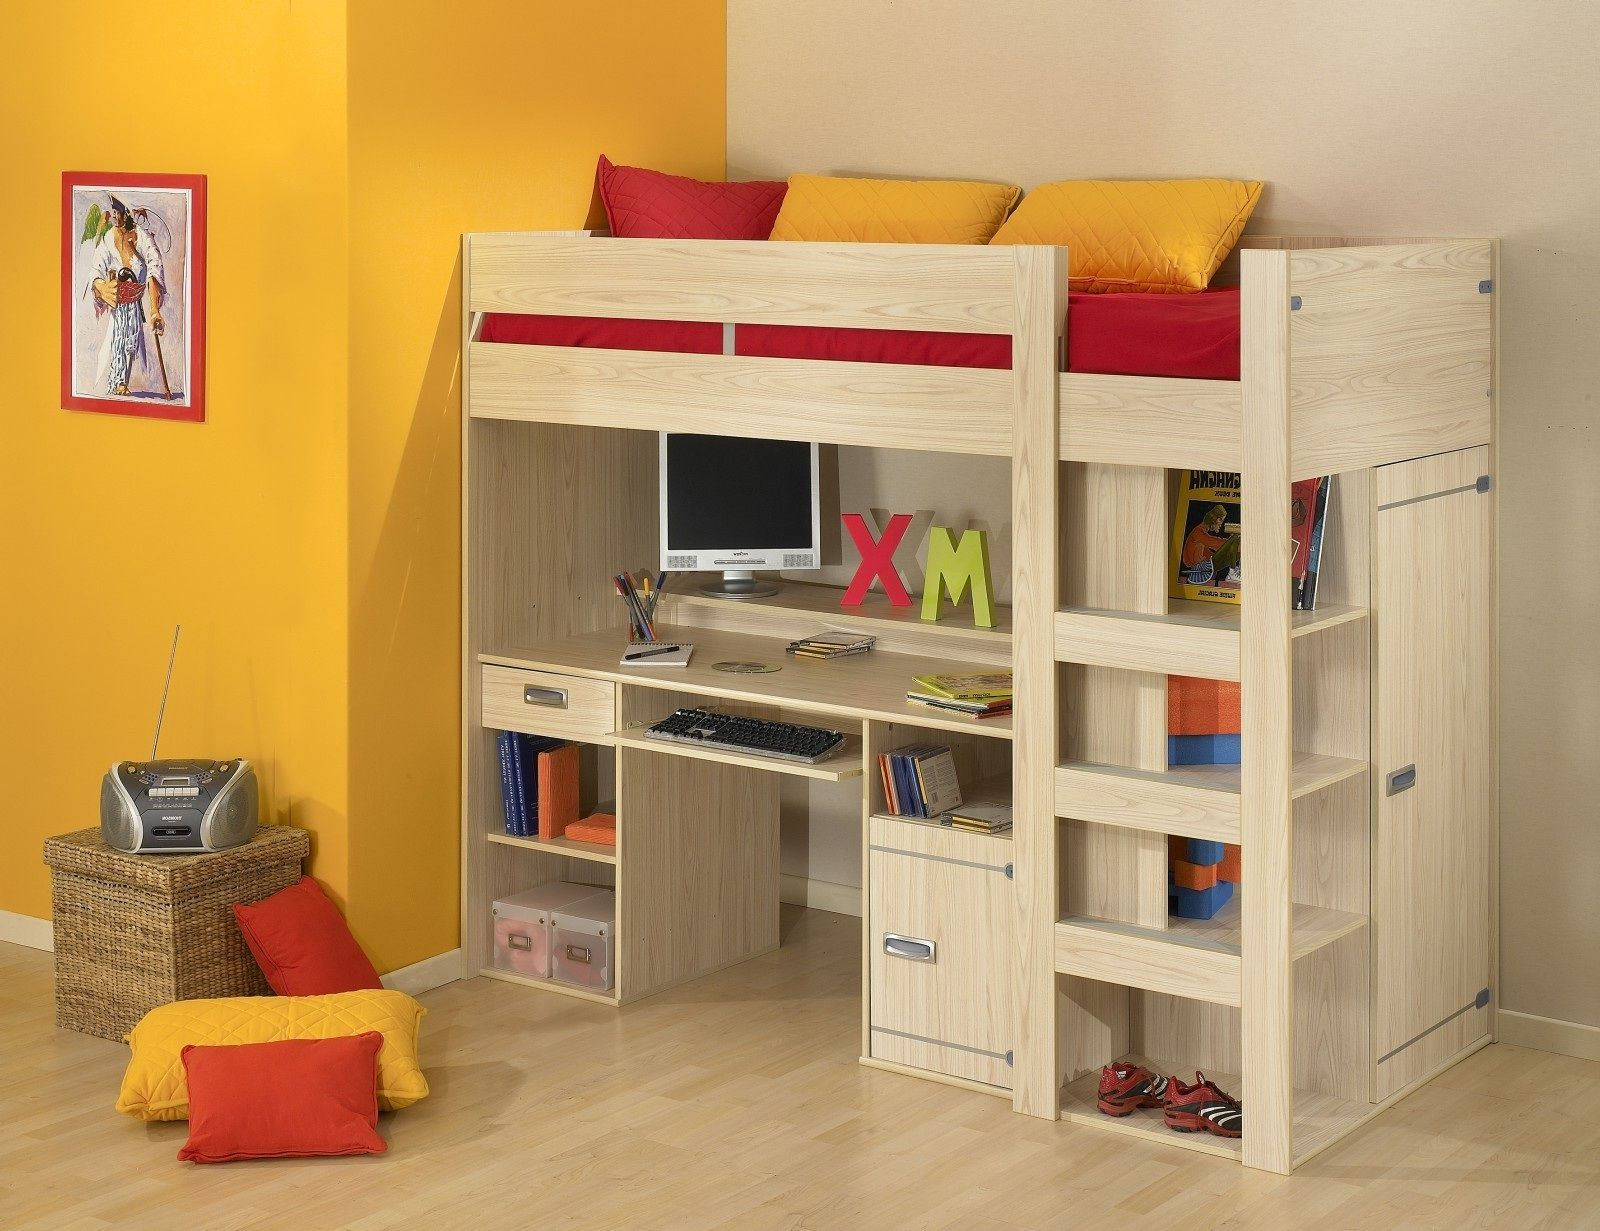 Uncategorized Kids Loft Bed With Desk Underneath outstanding bunk bed with table underneath furniture pinterest loft desk trundle one might believe that attics beds are only for children depending on an individual taste to sleep